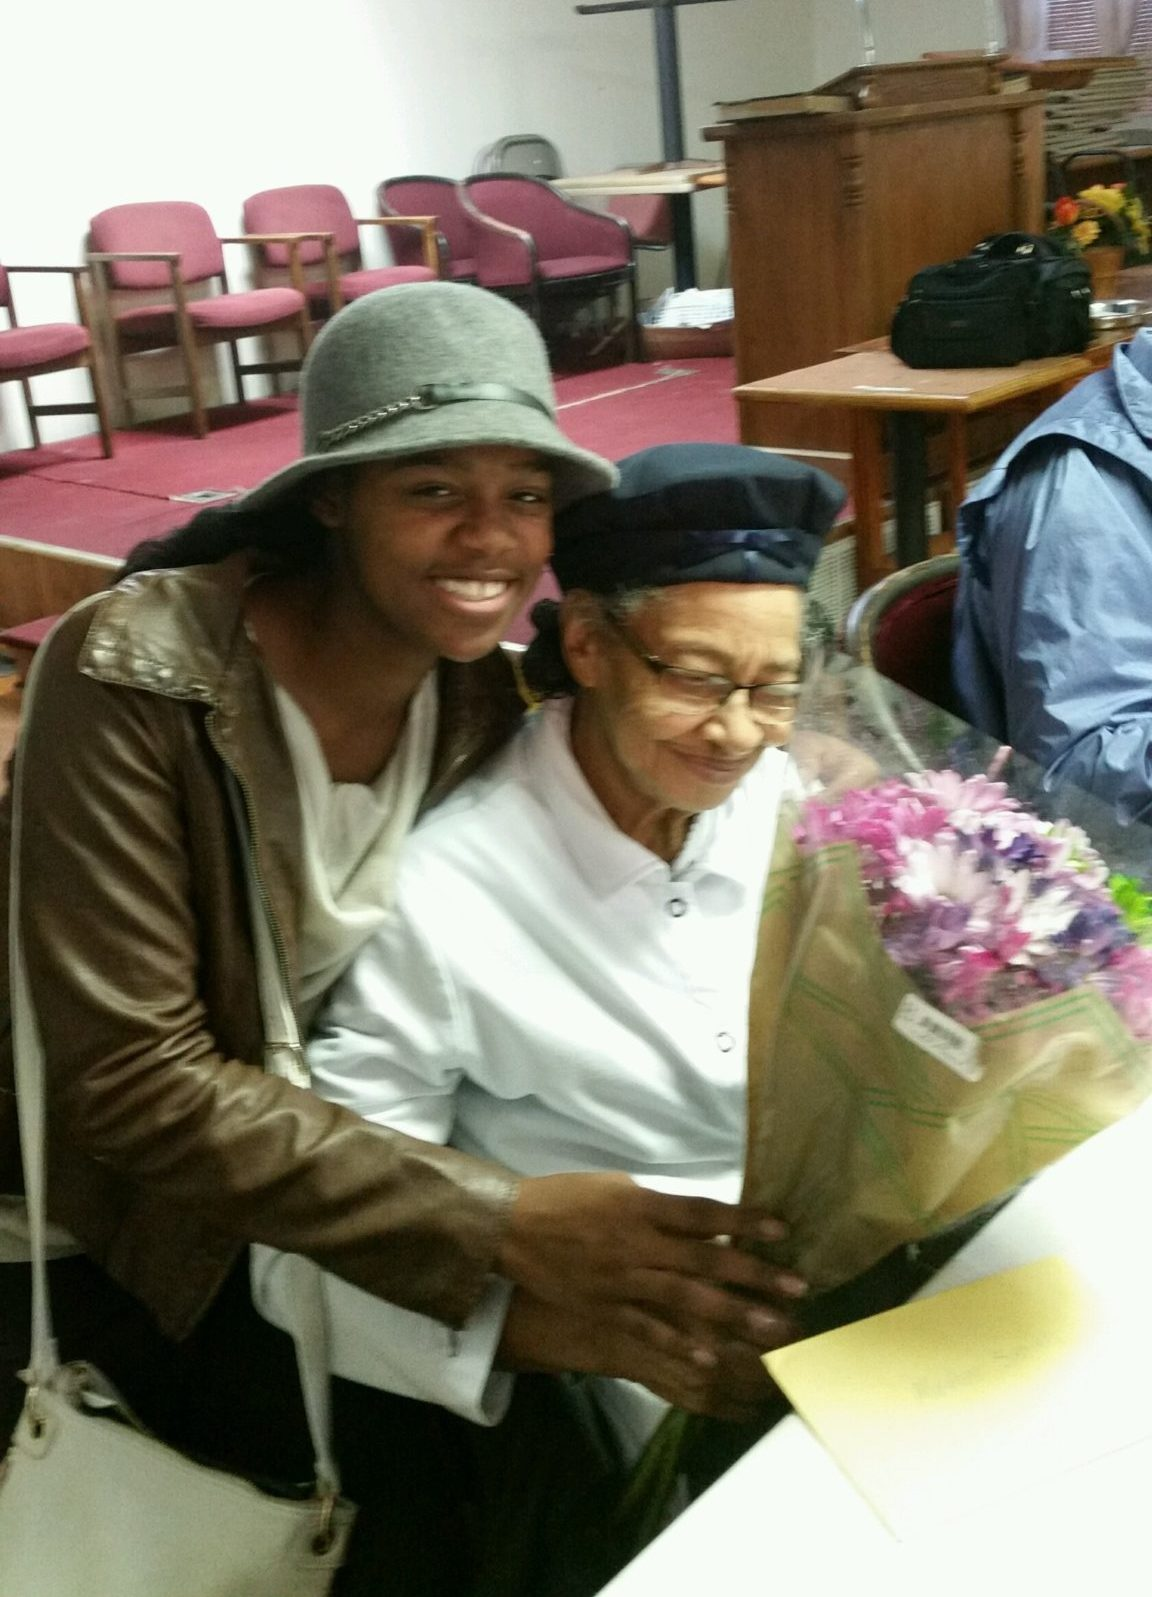 Taren Daniels volunteering at Senior Center